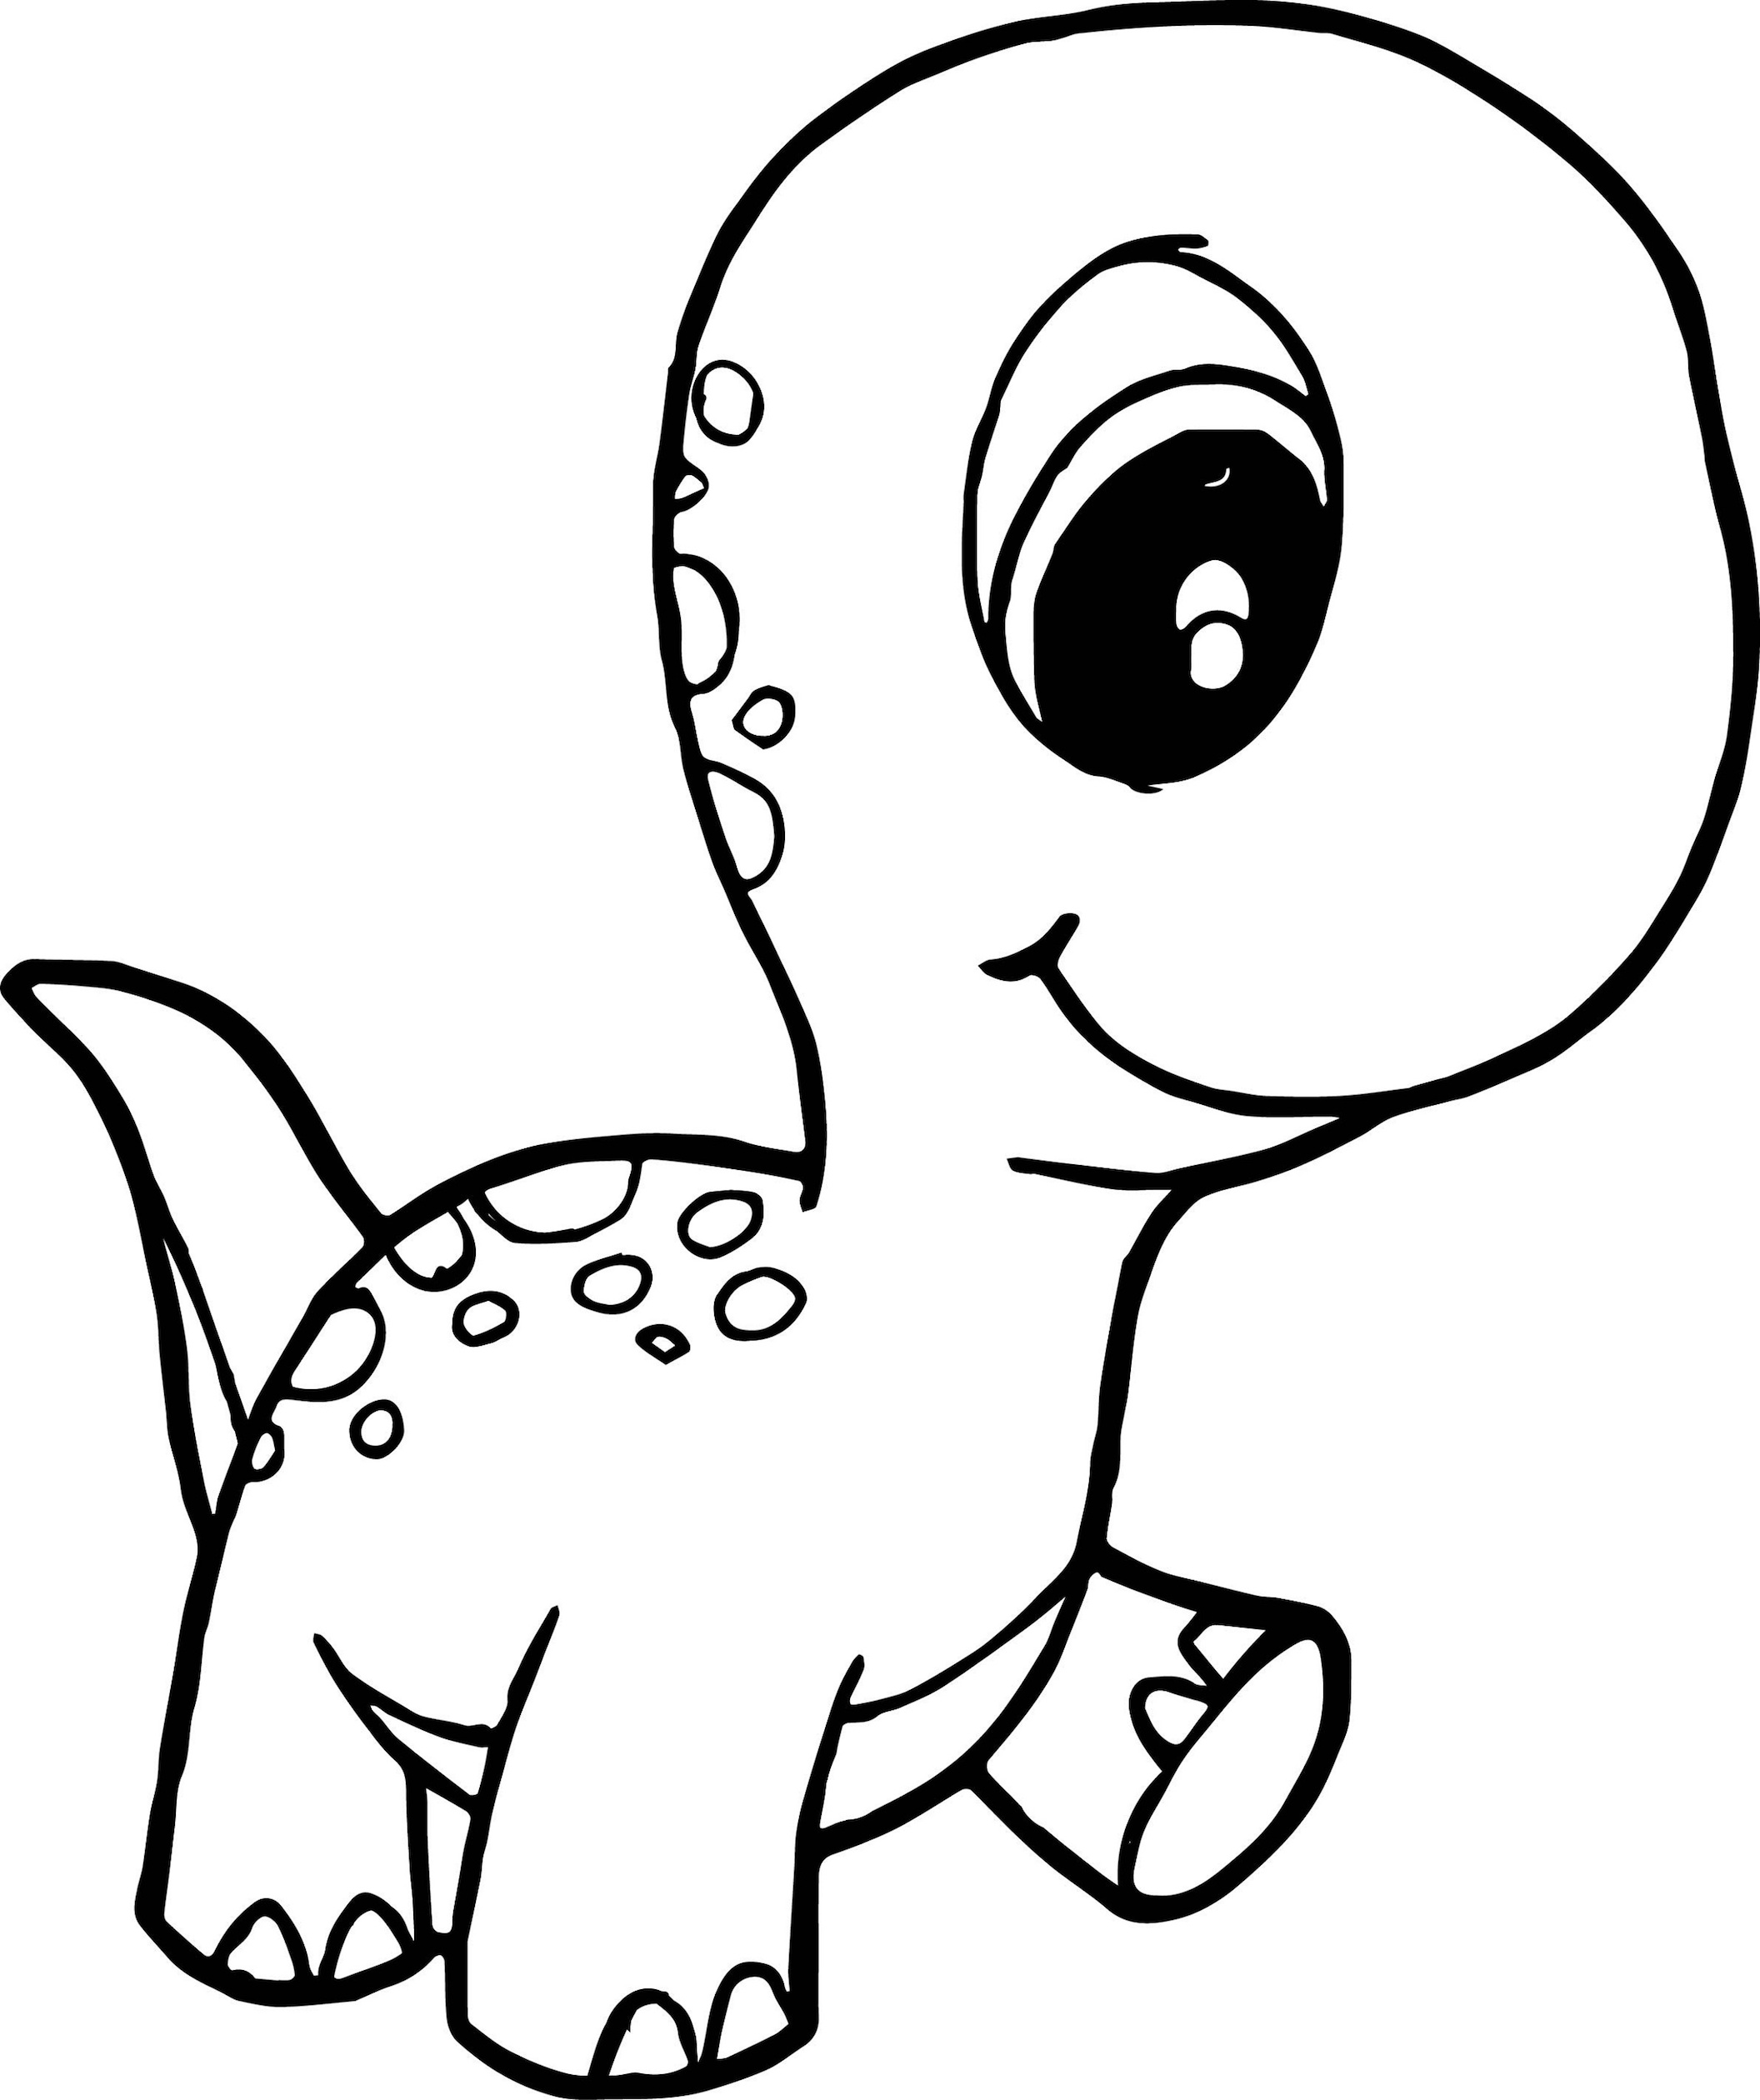 dinosaurs printable coloring pages dinosaur coloring pages and other free printable coloring printable coloring pages dinosaurs